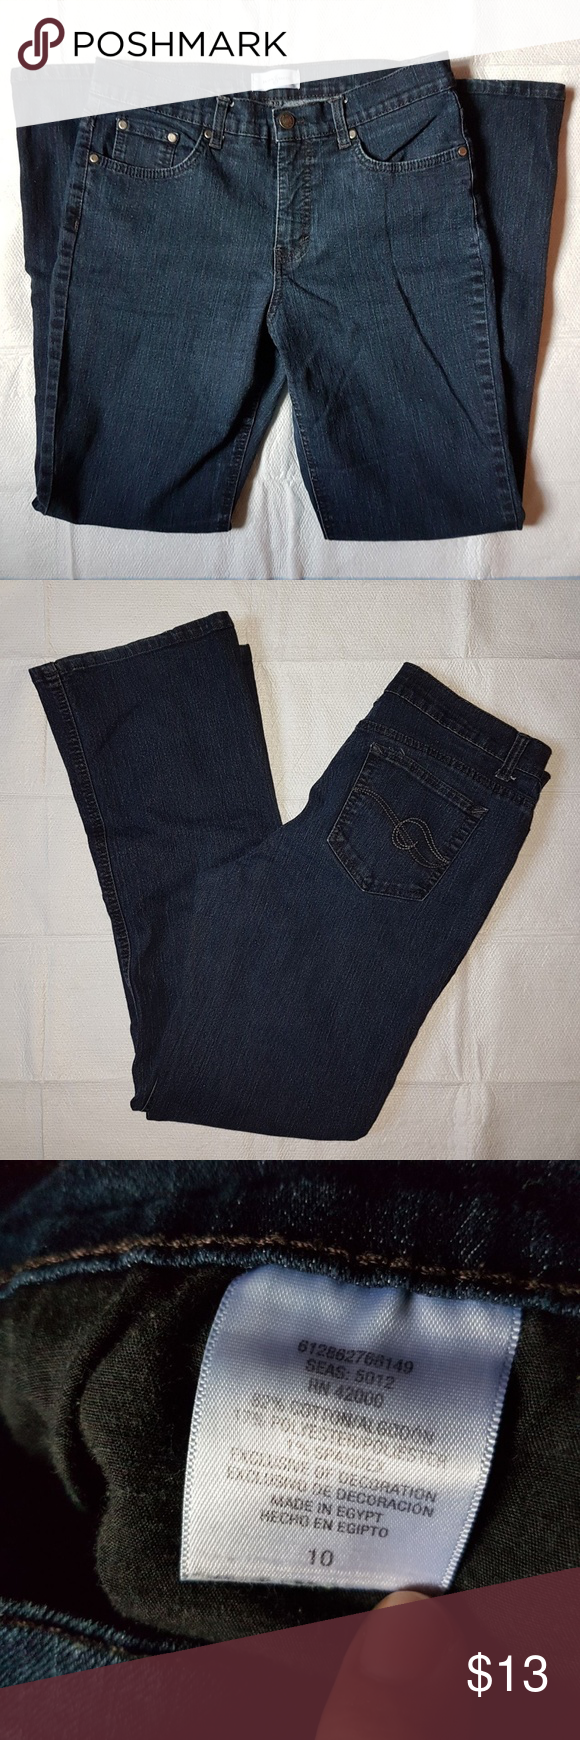 Jaclyn Smith Women S Jeans Size 10 Clothes Design Fashion